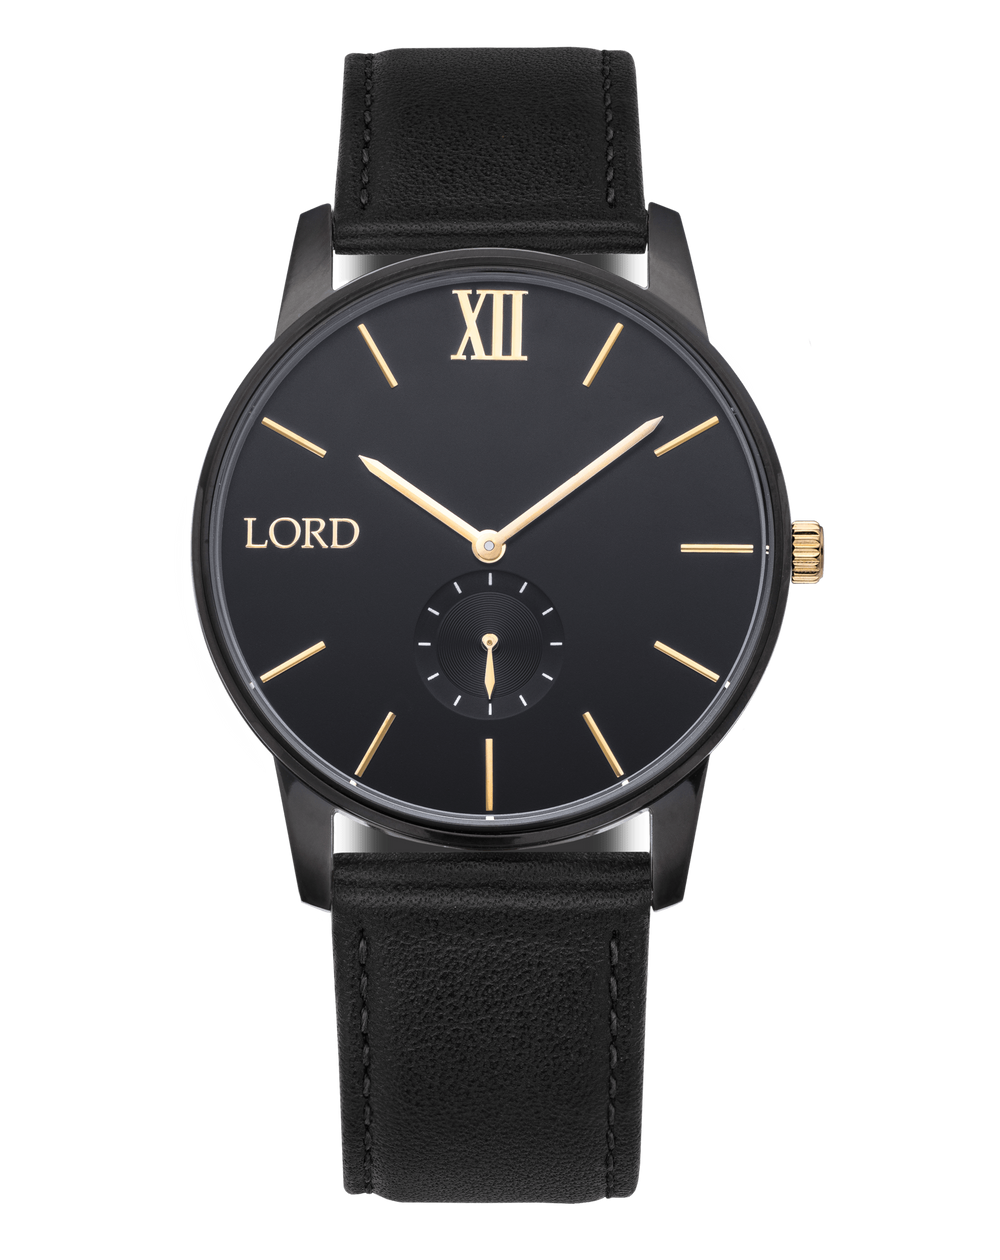 solitude black gold watch men s watches lord timepieces solitude black watch men s watches lord timepieces